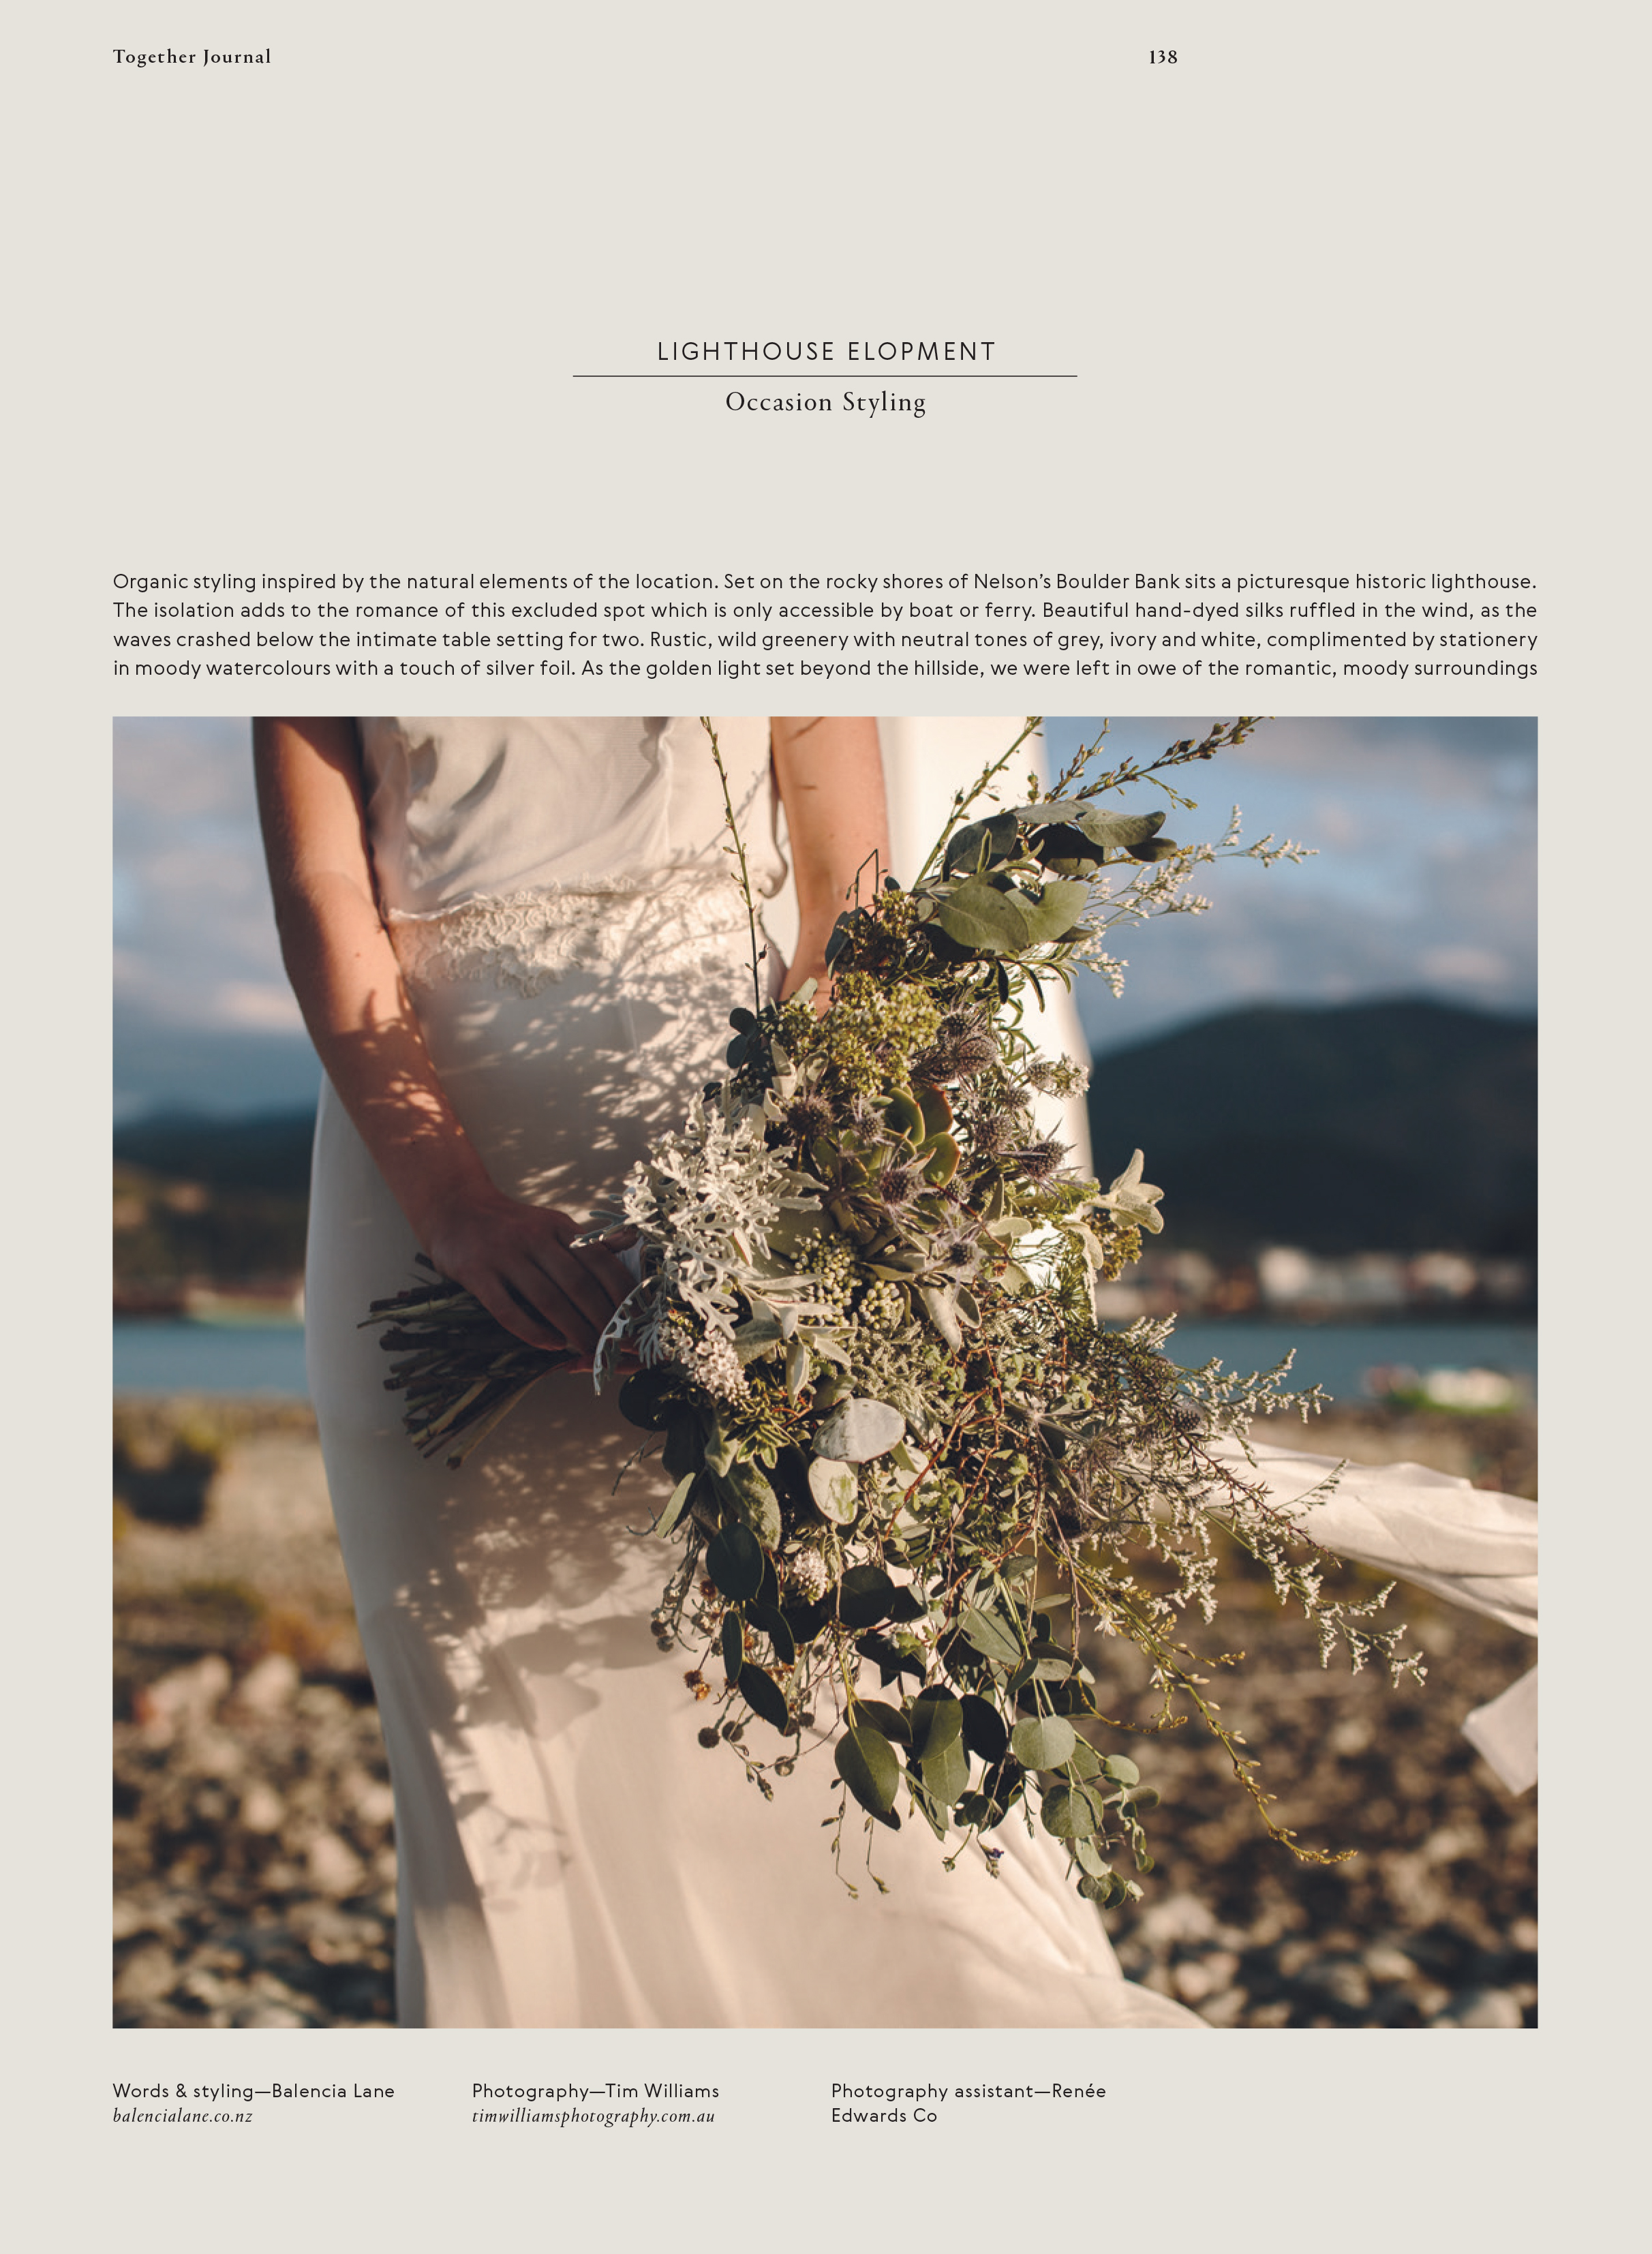 Styling_Lighthouse elopement1